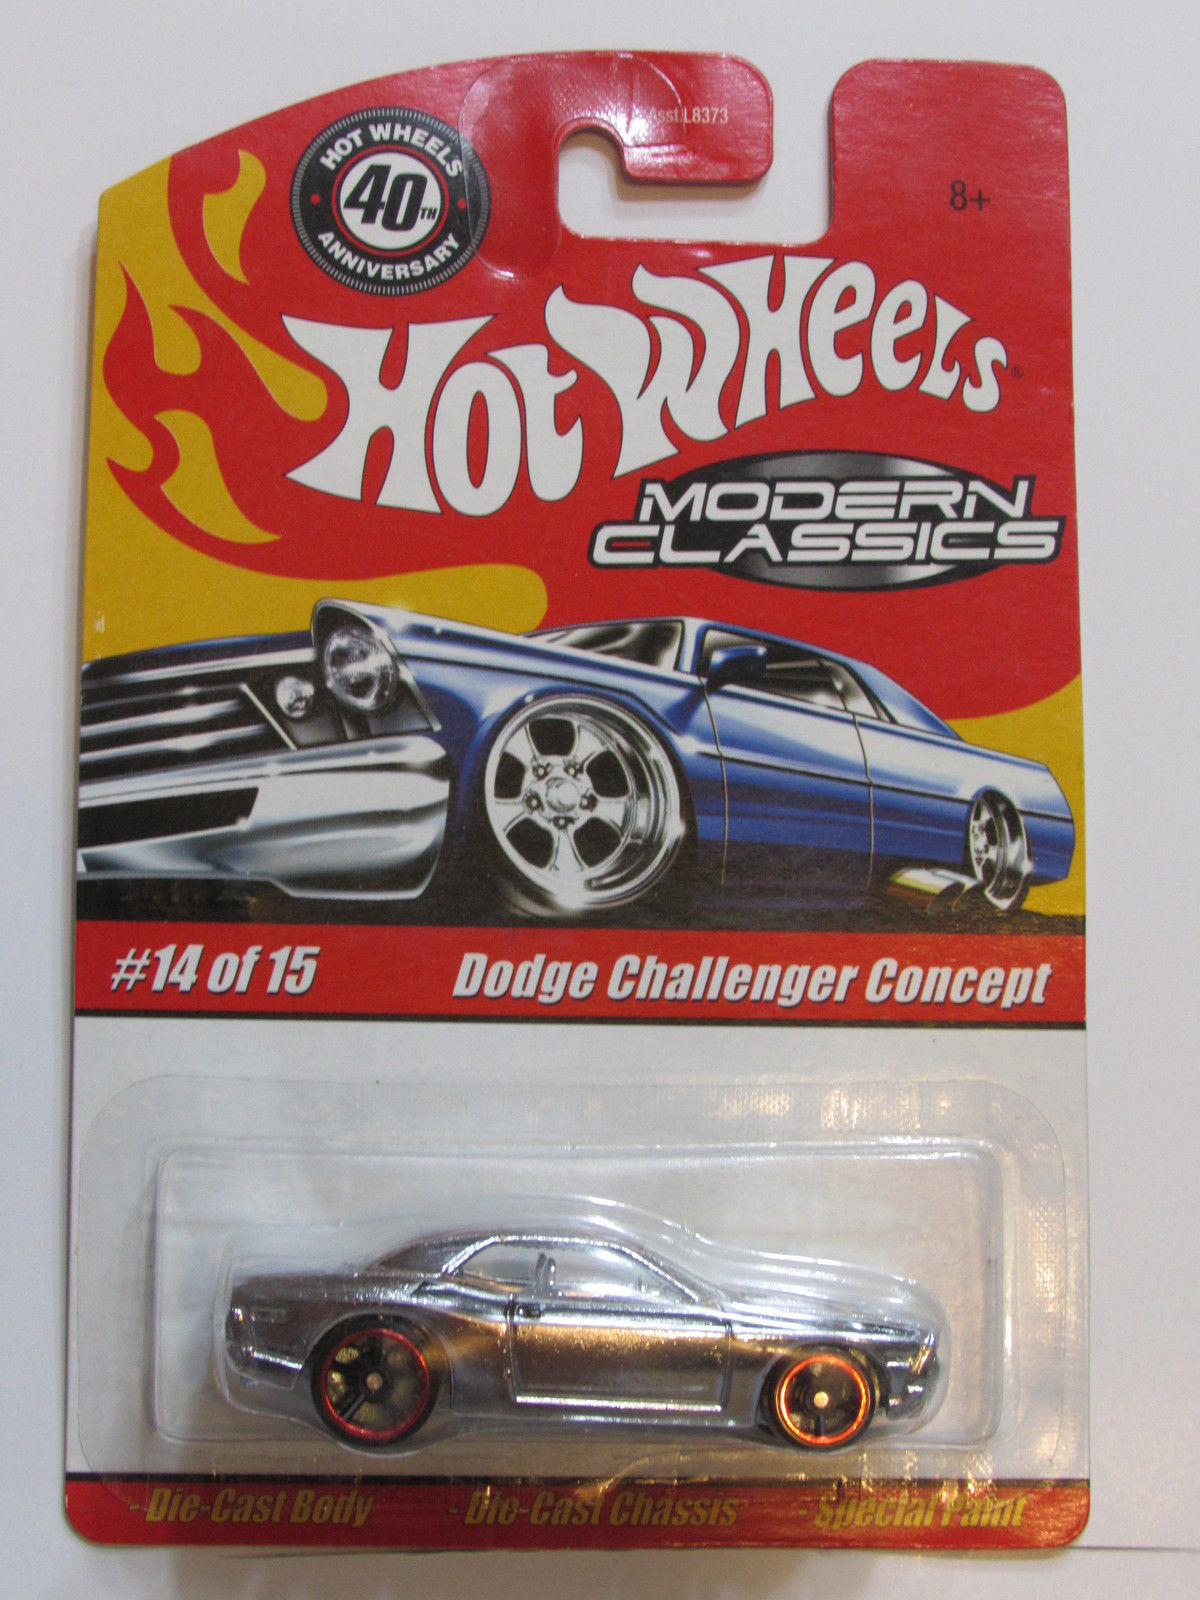 HOT WHEELS CLASSICS MODERN CLASSICS #14/15 DODGE CHALLENGER CONCEPT CHROME